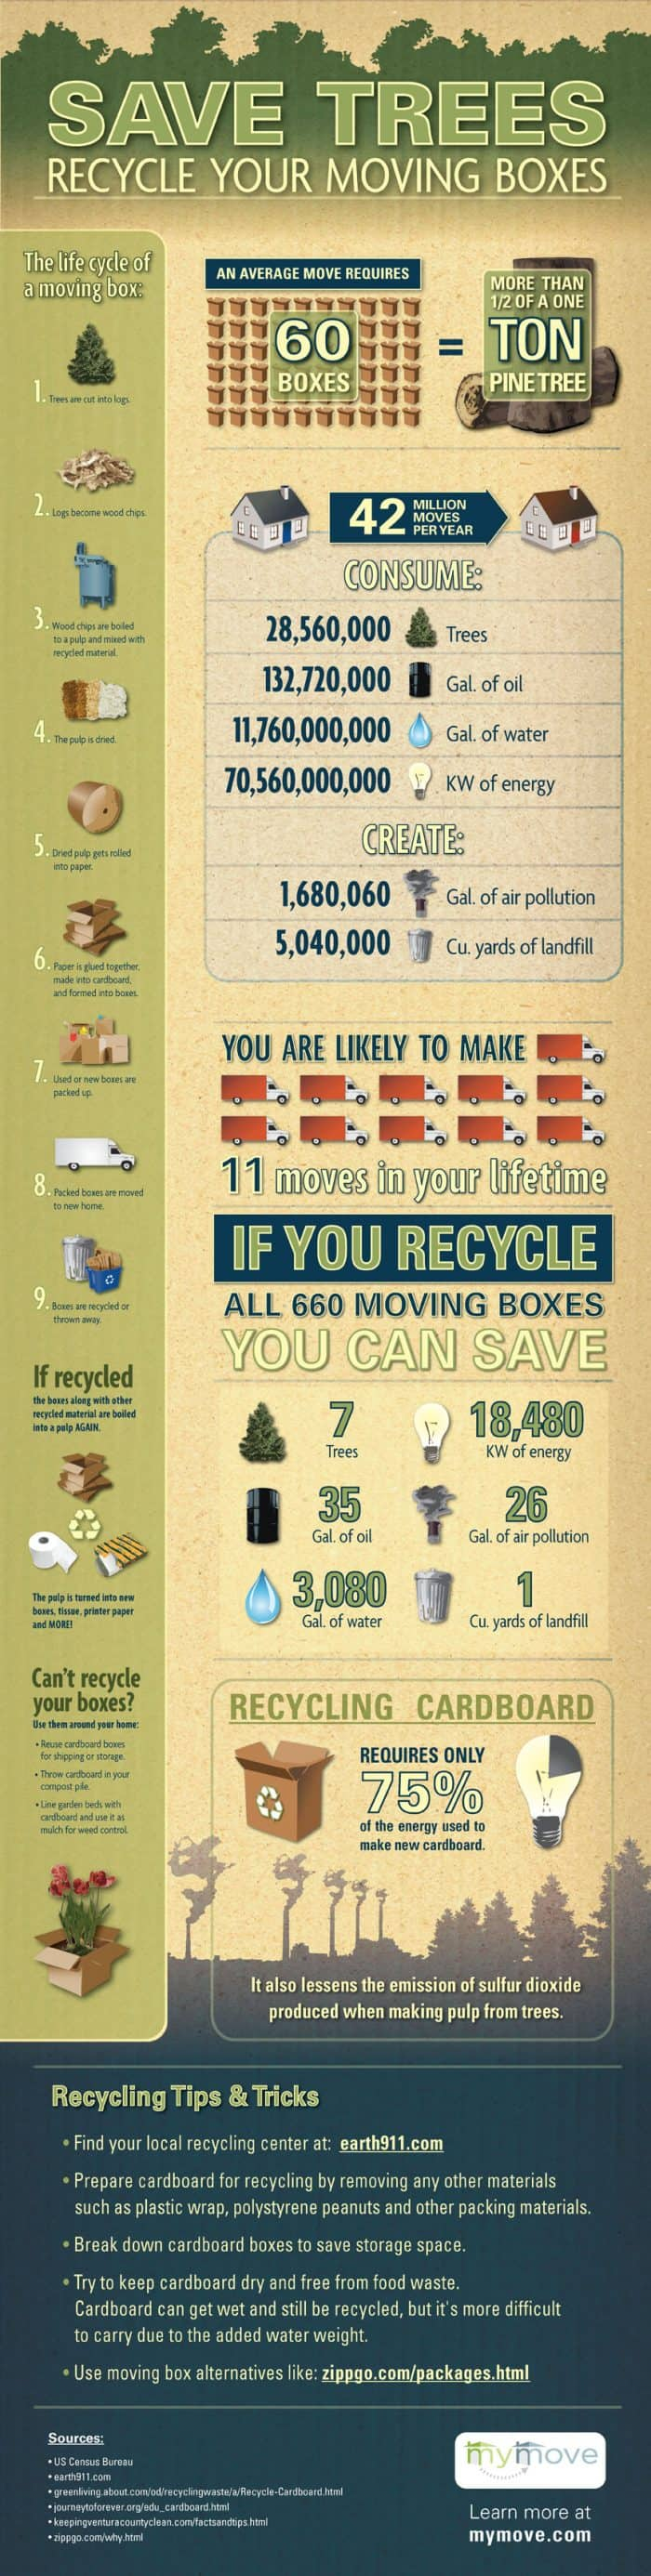 Save Trees Recycle Your Moving Boxes Infographic